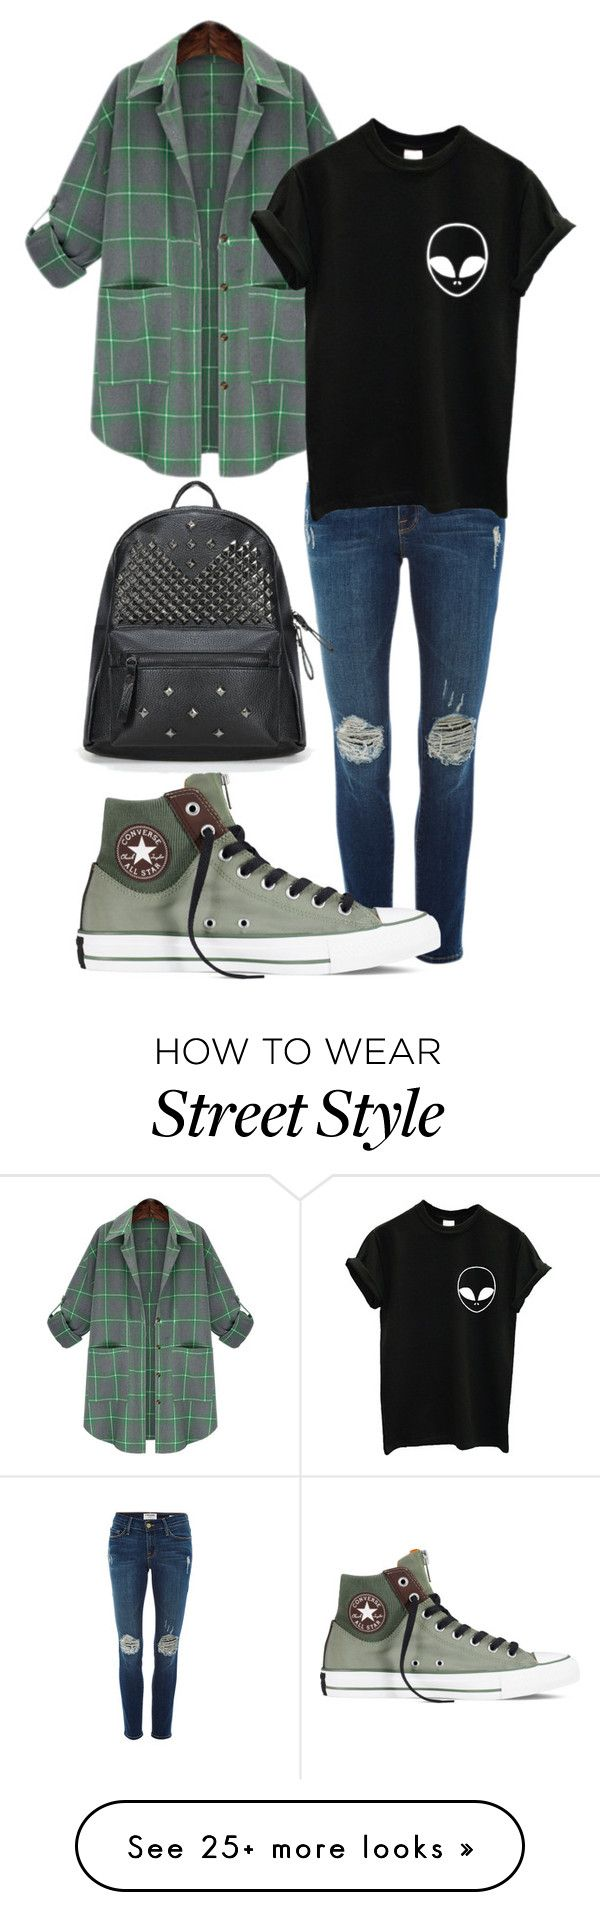 """Street style"" by phanh170102 on Polyvore featuring Frame Denim, Converse, women's clothing, women's fashion, women, female, woman, misses and juniors"